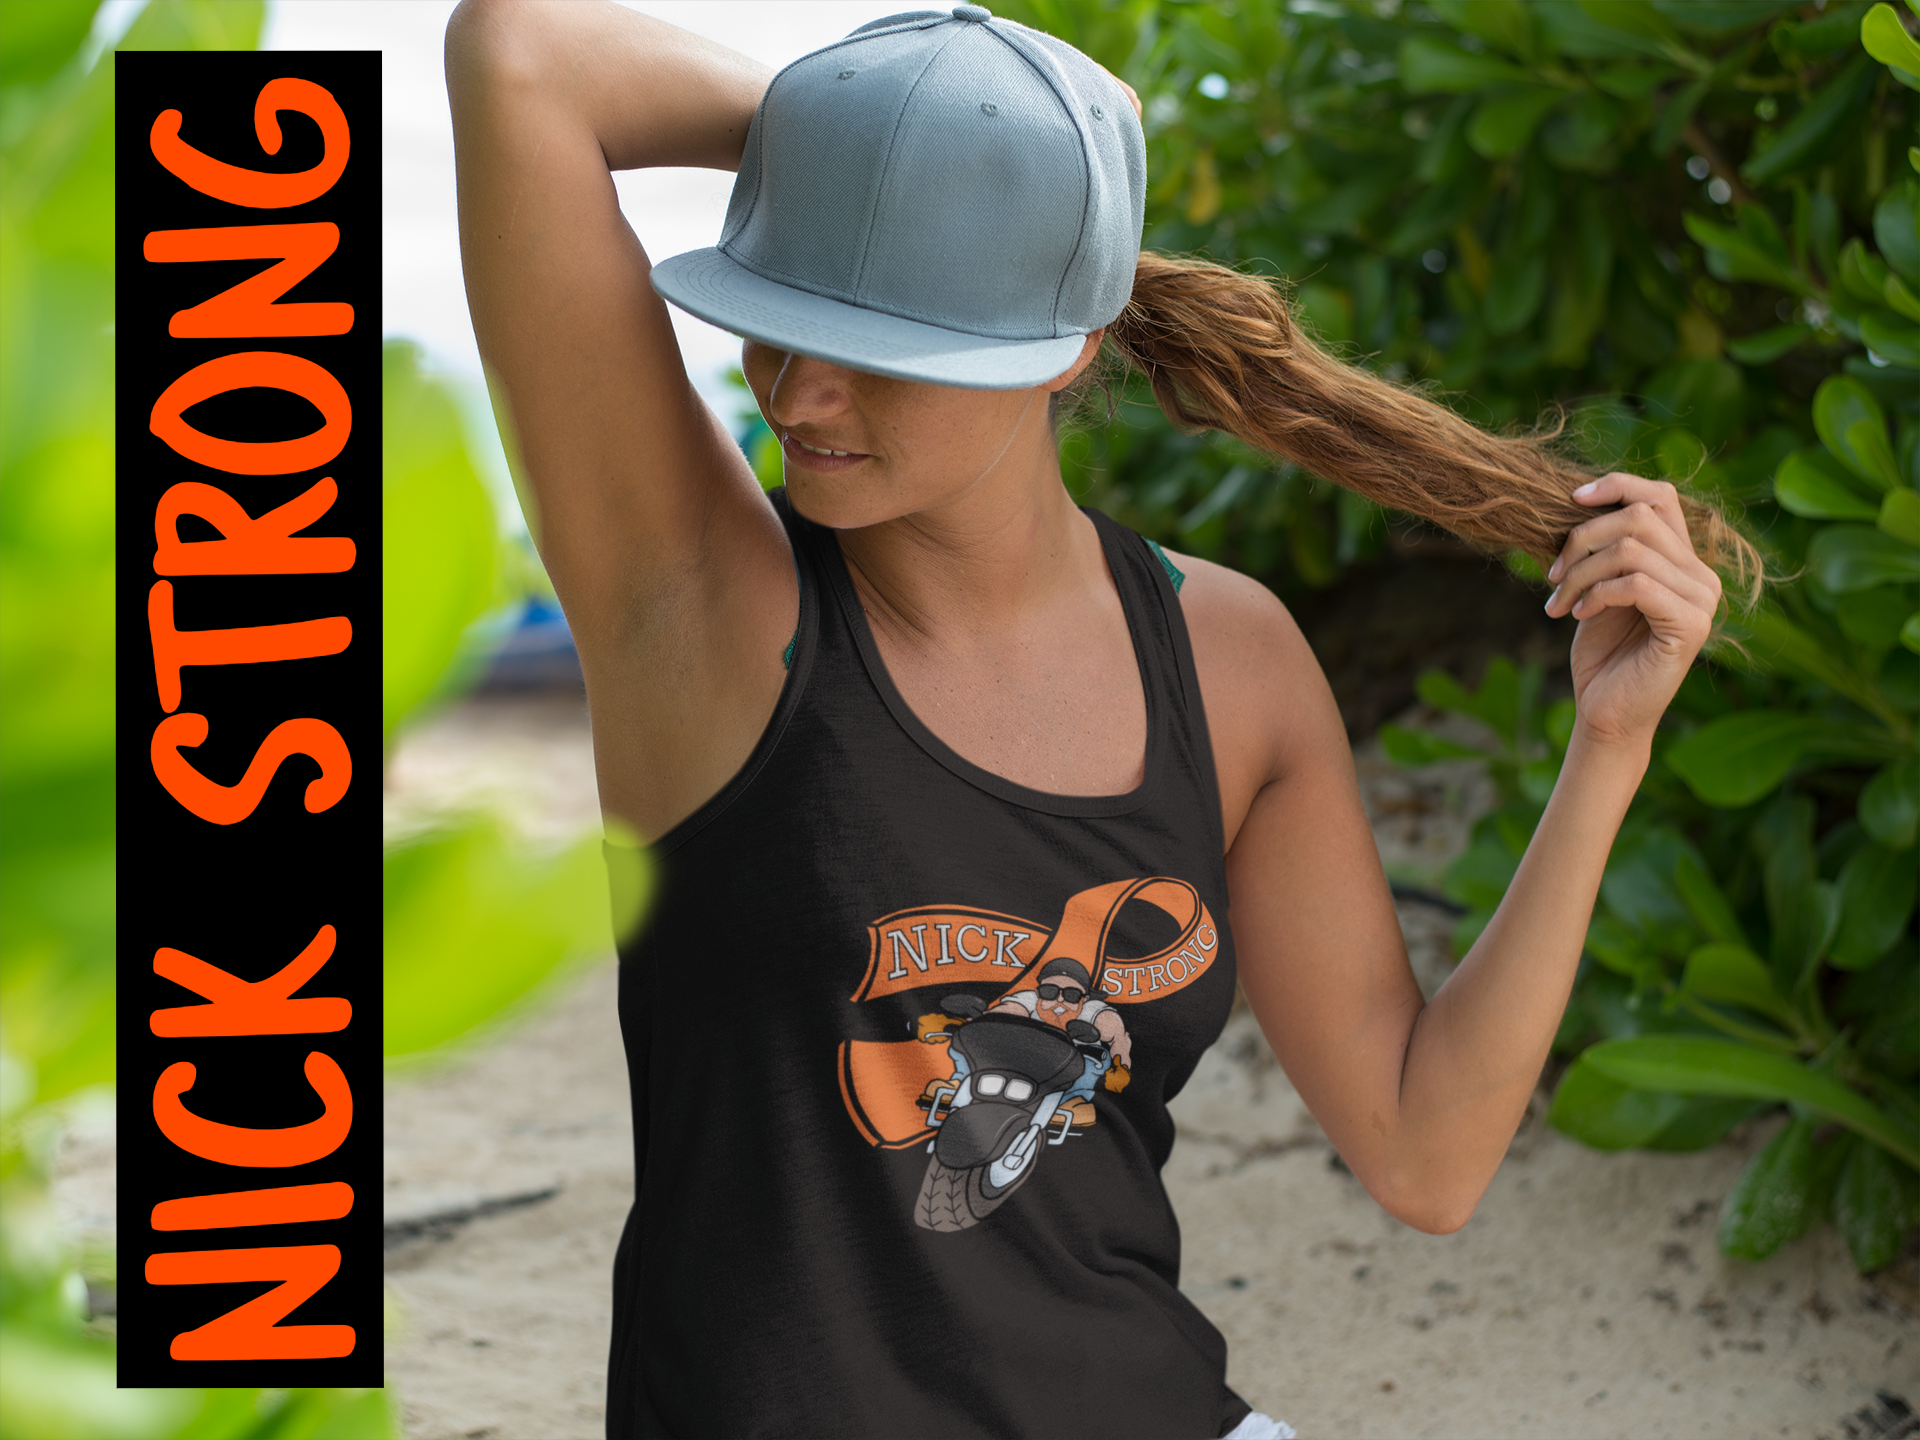 NICK STRONG Tank Tops